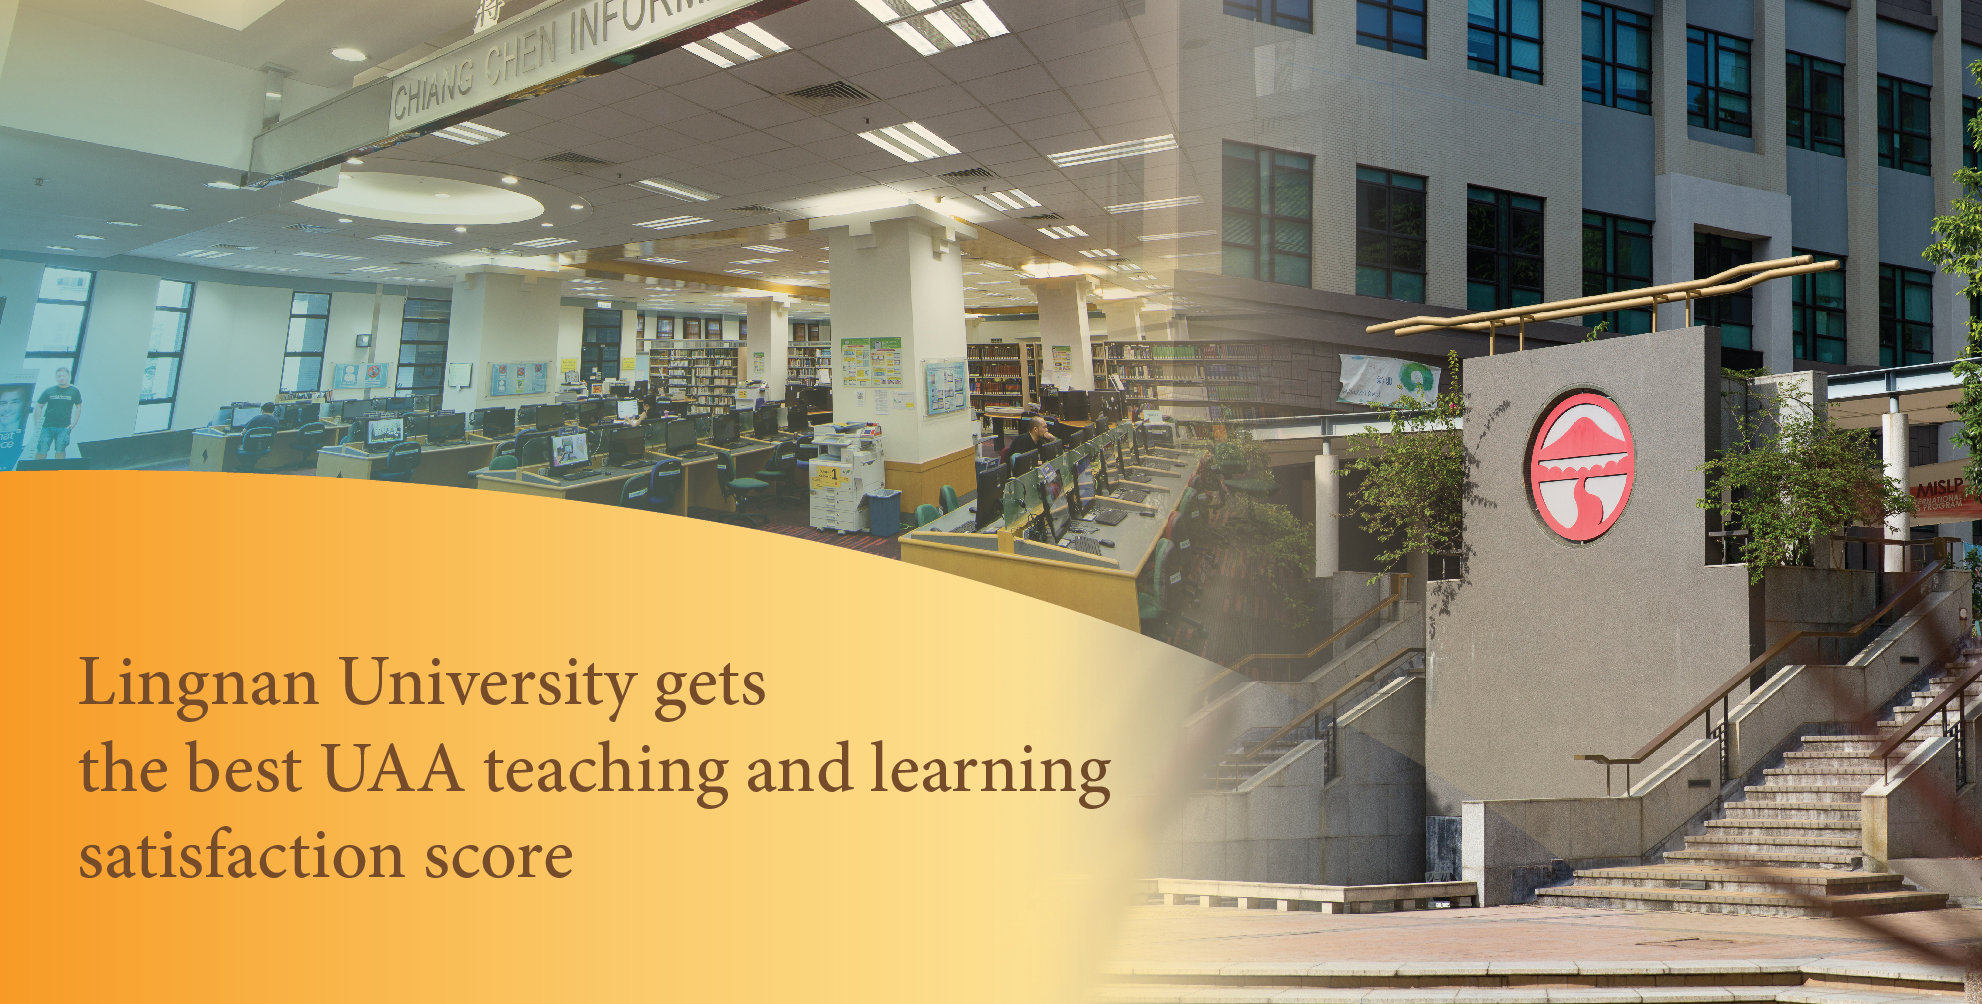 LU gets the best UAA teaching and learning satisfaction score